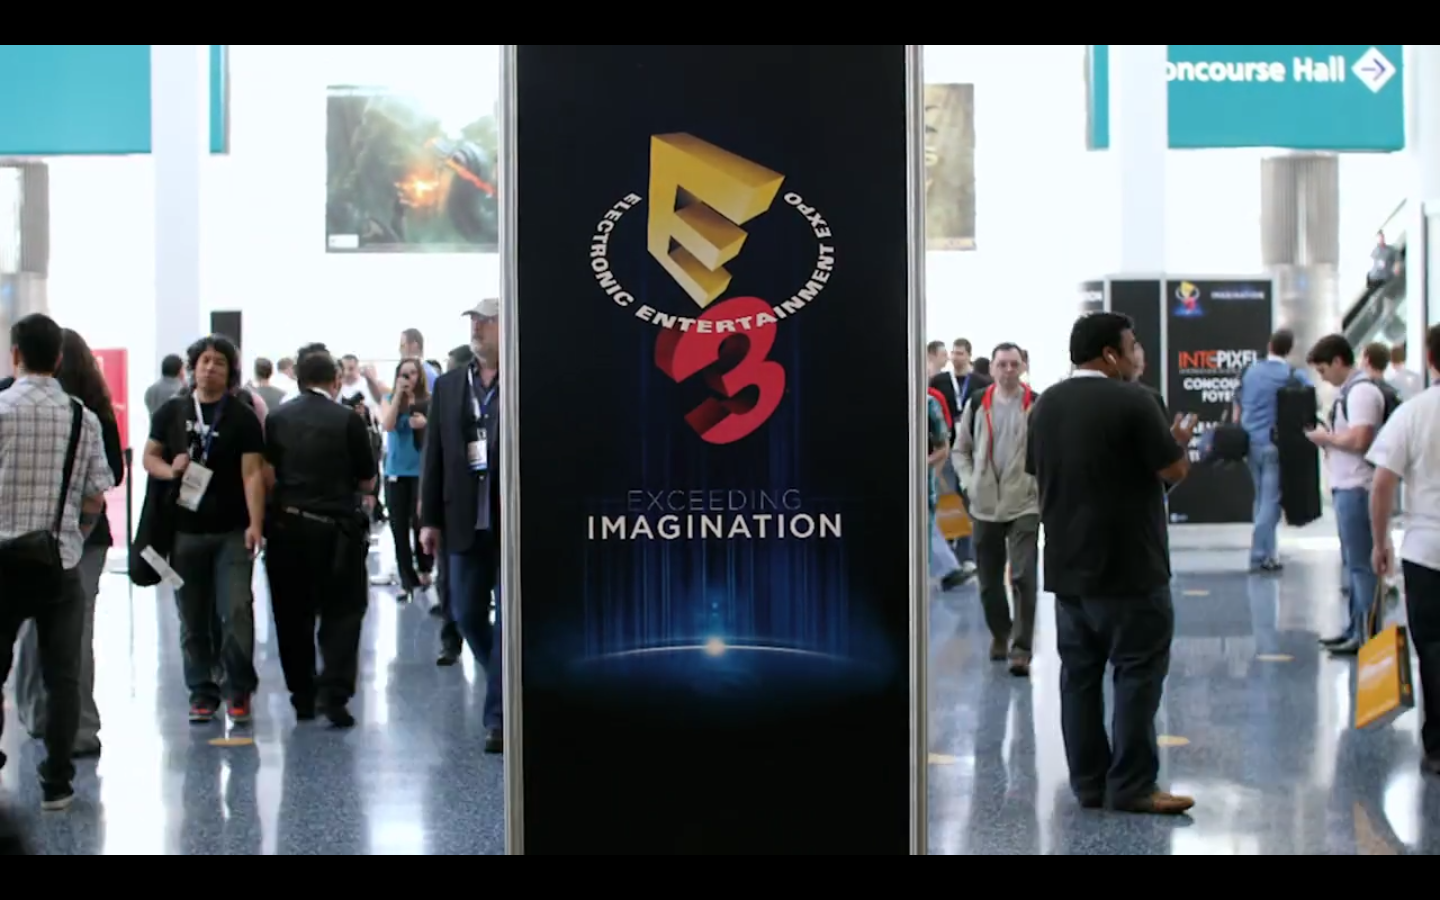 E3 More than games – Los Angeles